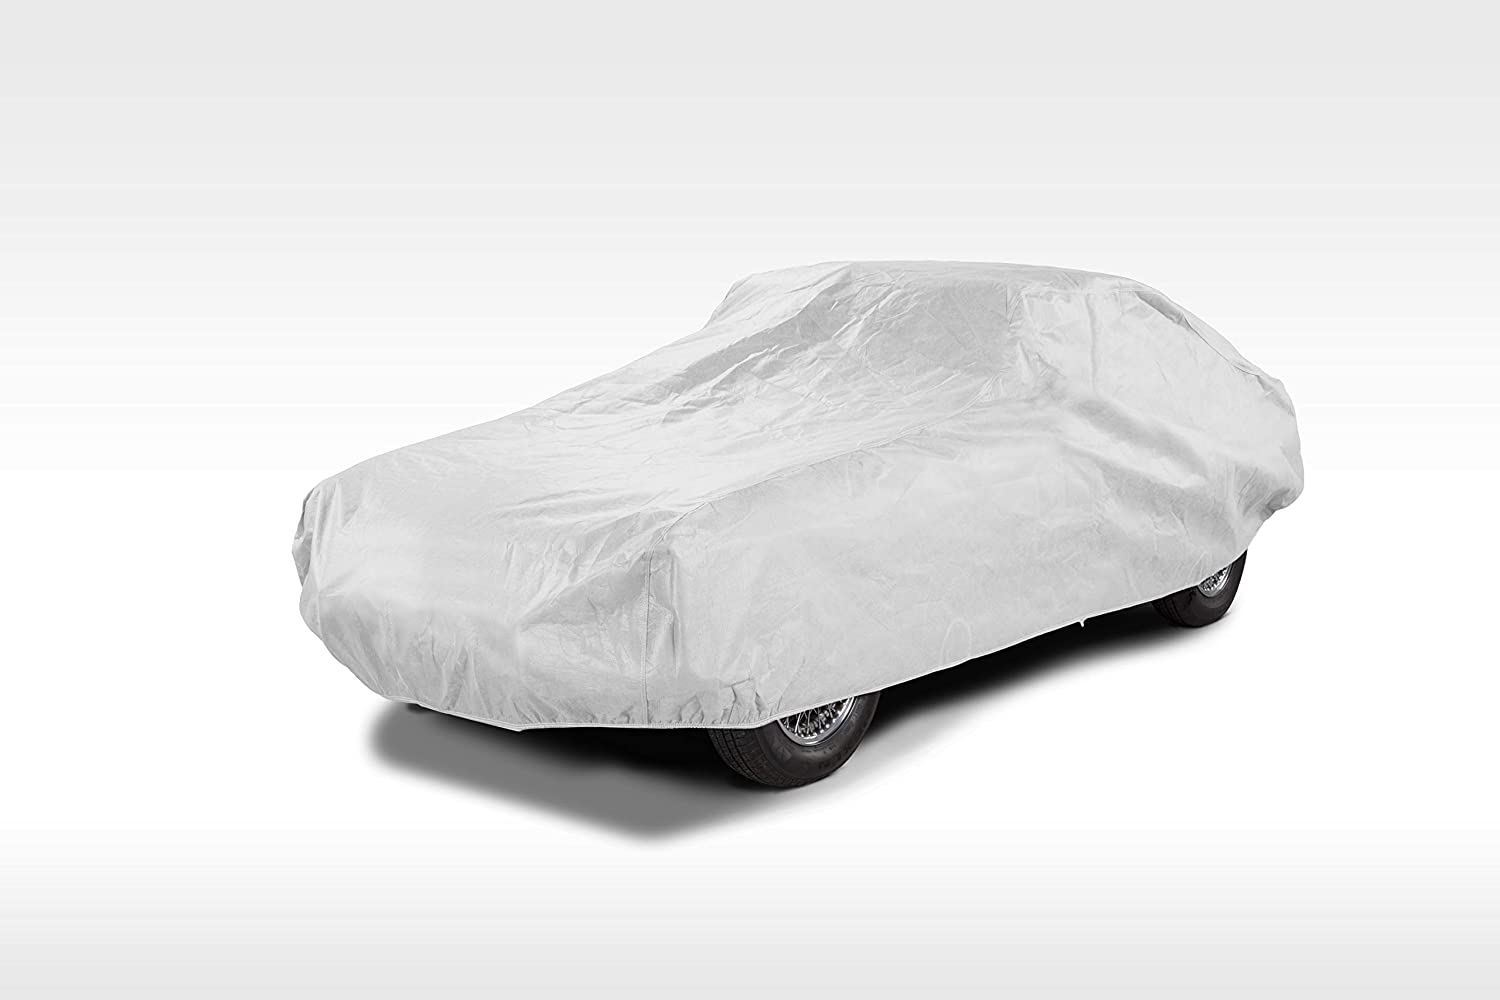 to fit Jaguar XJ6 XJ8 X350 LWB 2002-2009 COVER-ZONE Voyager Outdoor fitted Car Cover